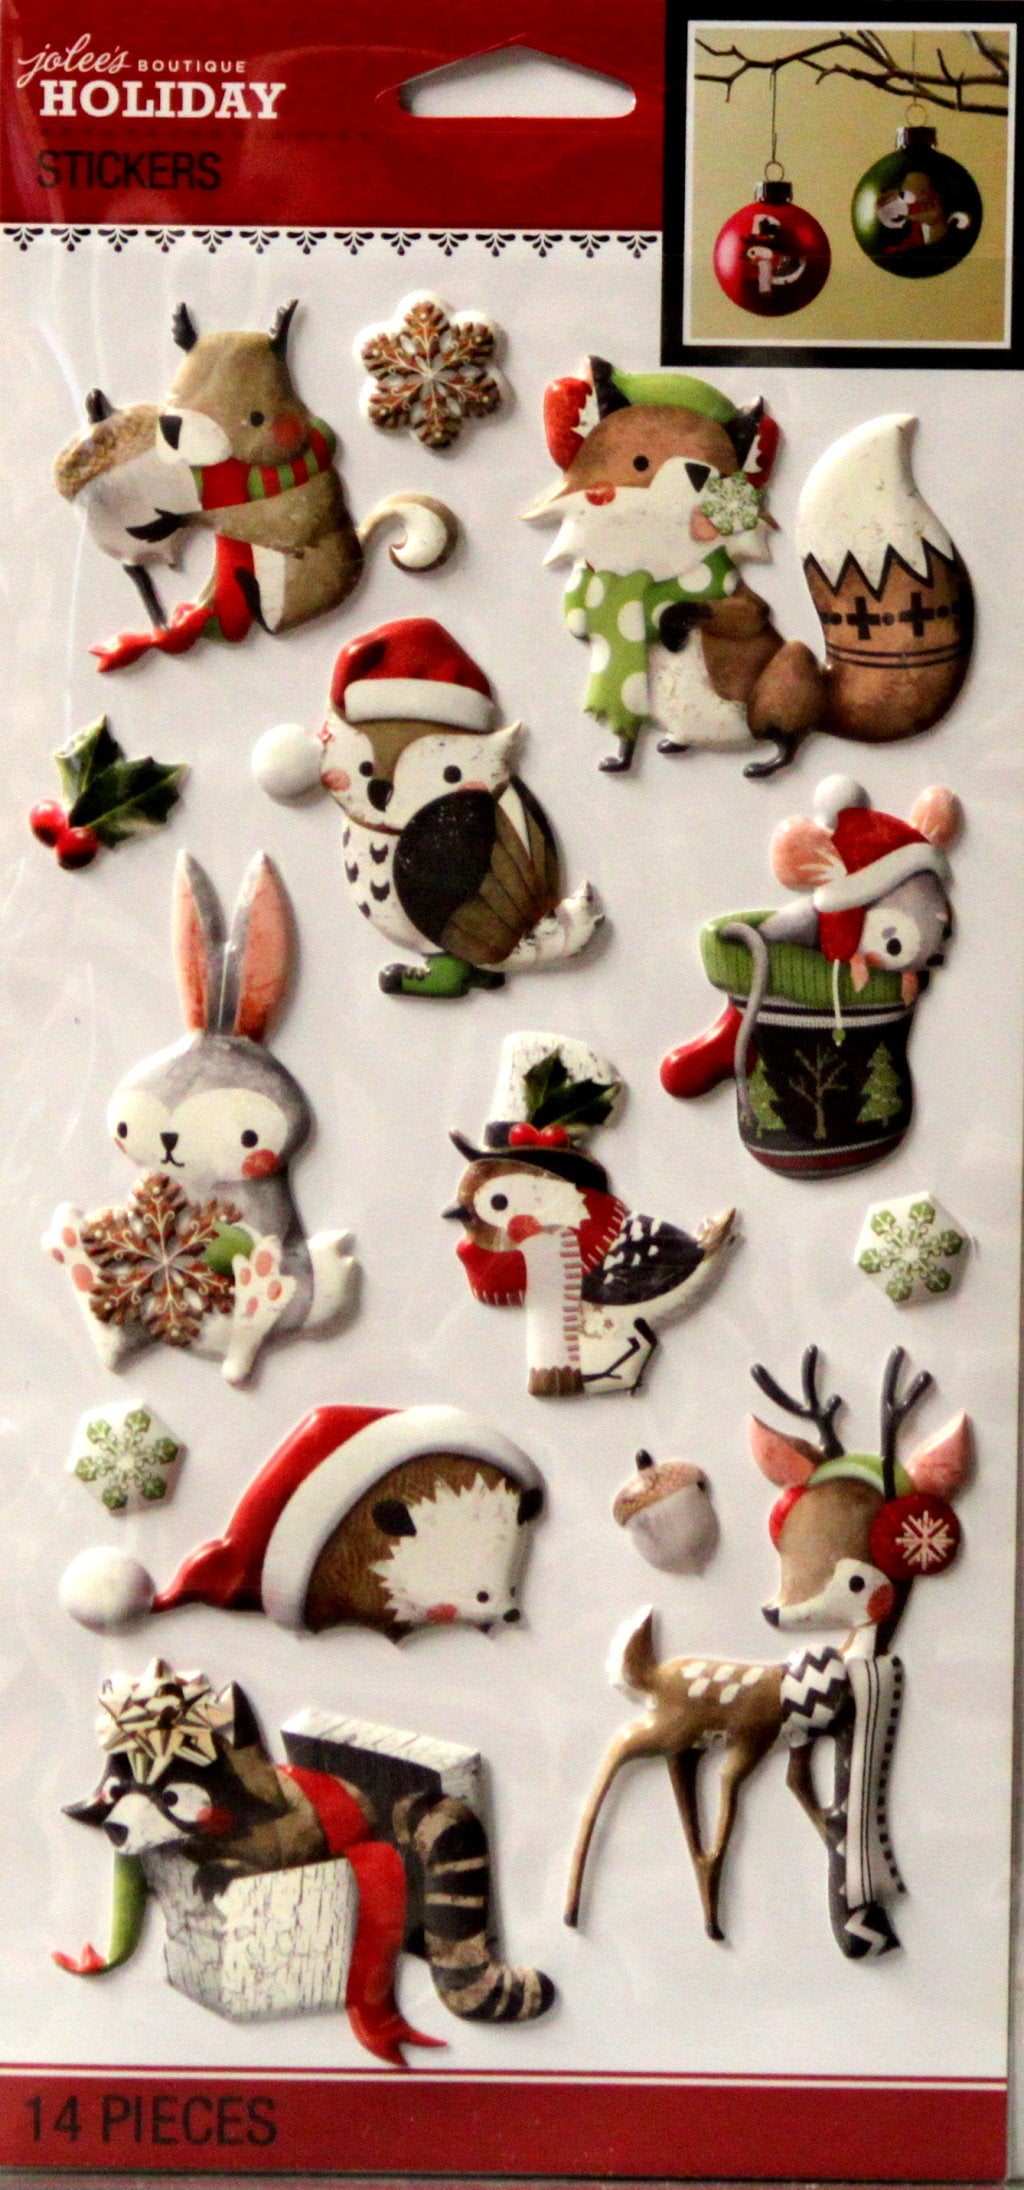 Jolee's Boutique Holiday Animals Puffy Dimensional Stickers Embellishments